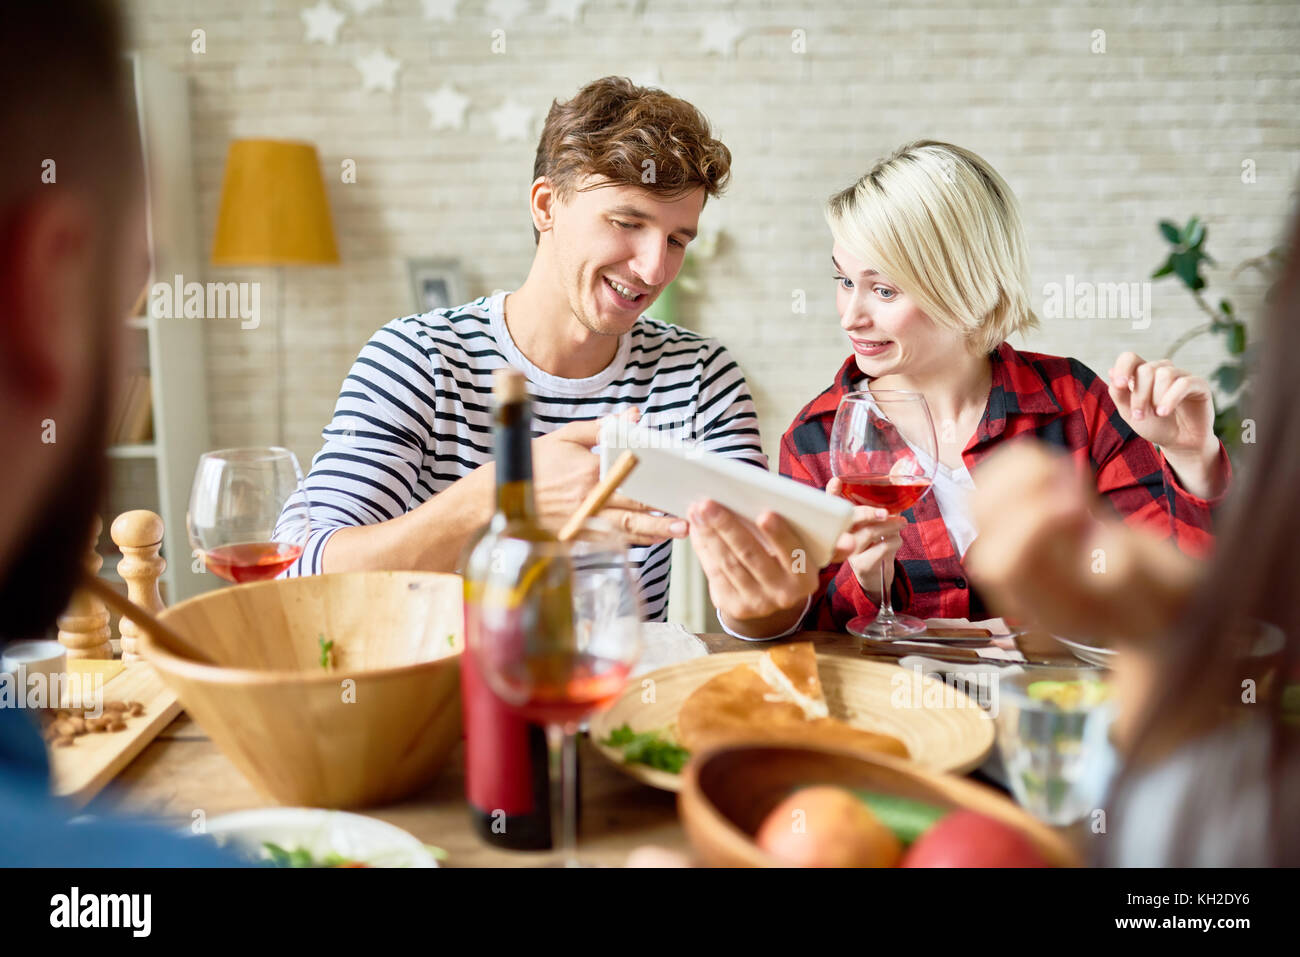 Portrait of young man and woman looking at digital tablet discussing photos while having dinner with friends sitting - Stock Image